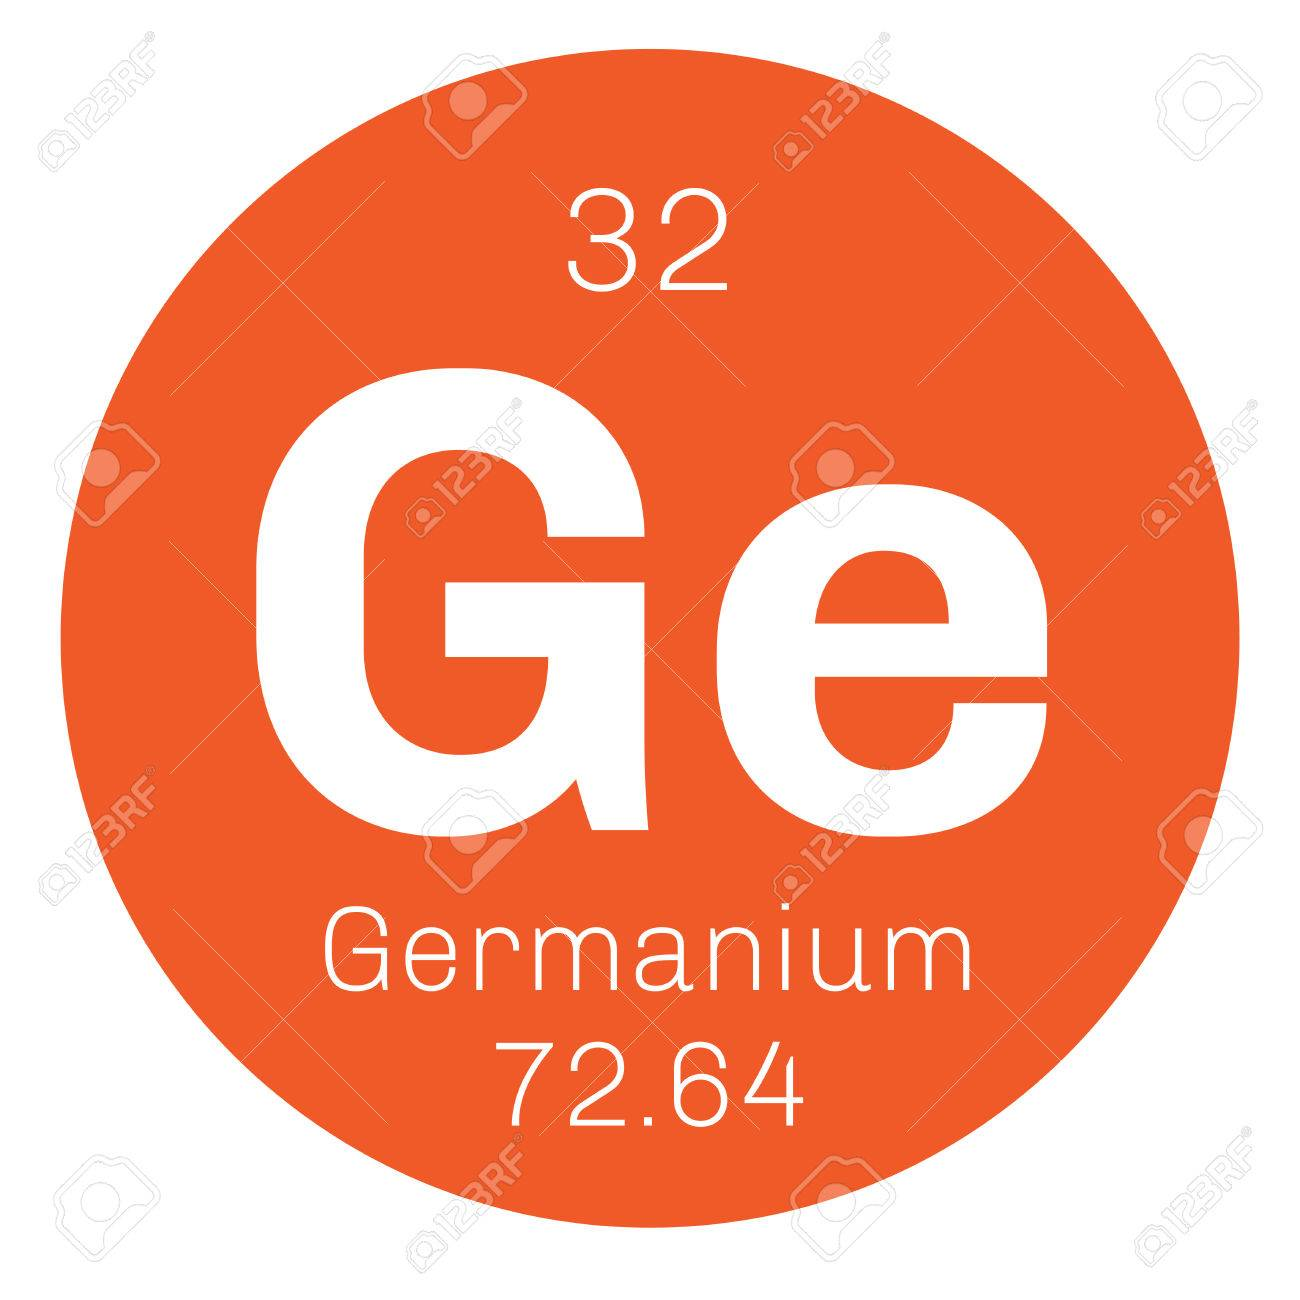 Germanium chemical element metalloid in carbon group a chemical element of periodic table germanium chemical element metalloid in carbon group a semiconductor colored icon with atomic buycottarizona